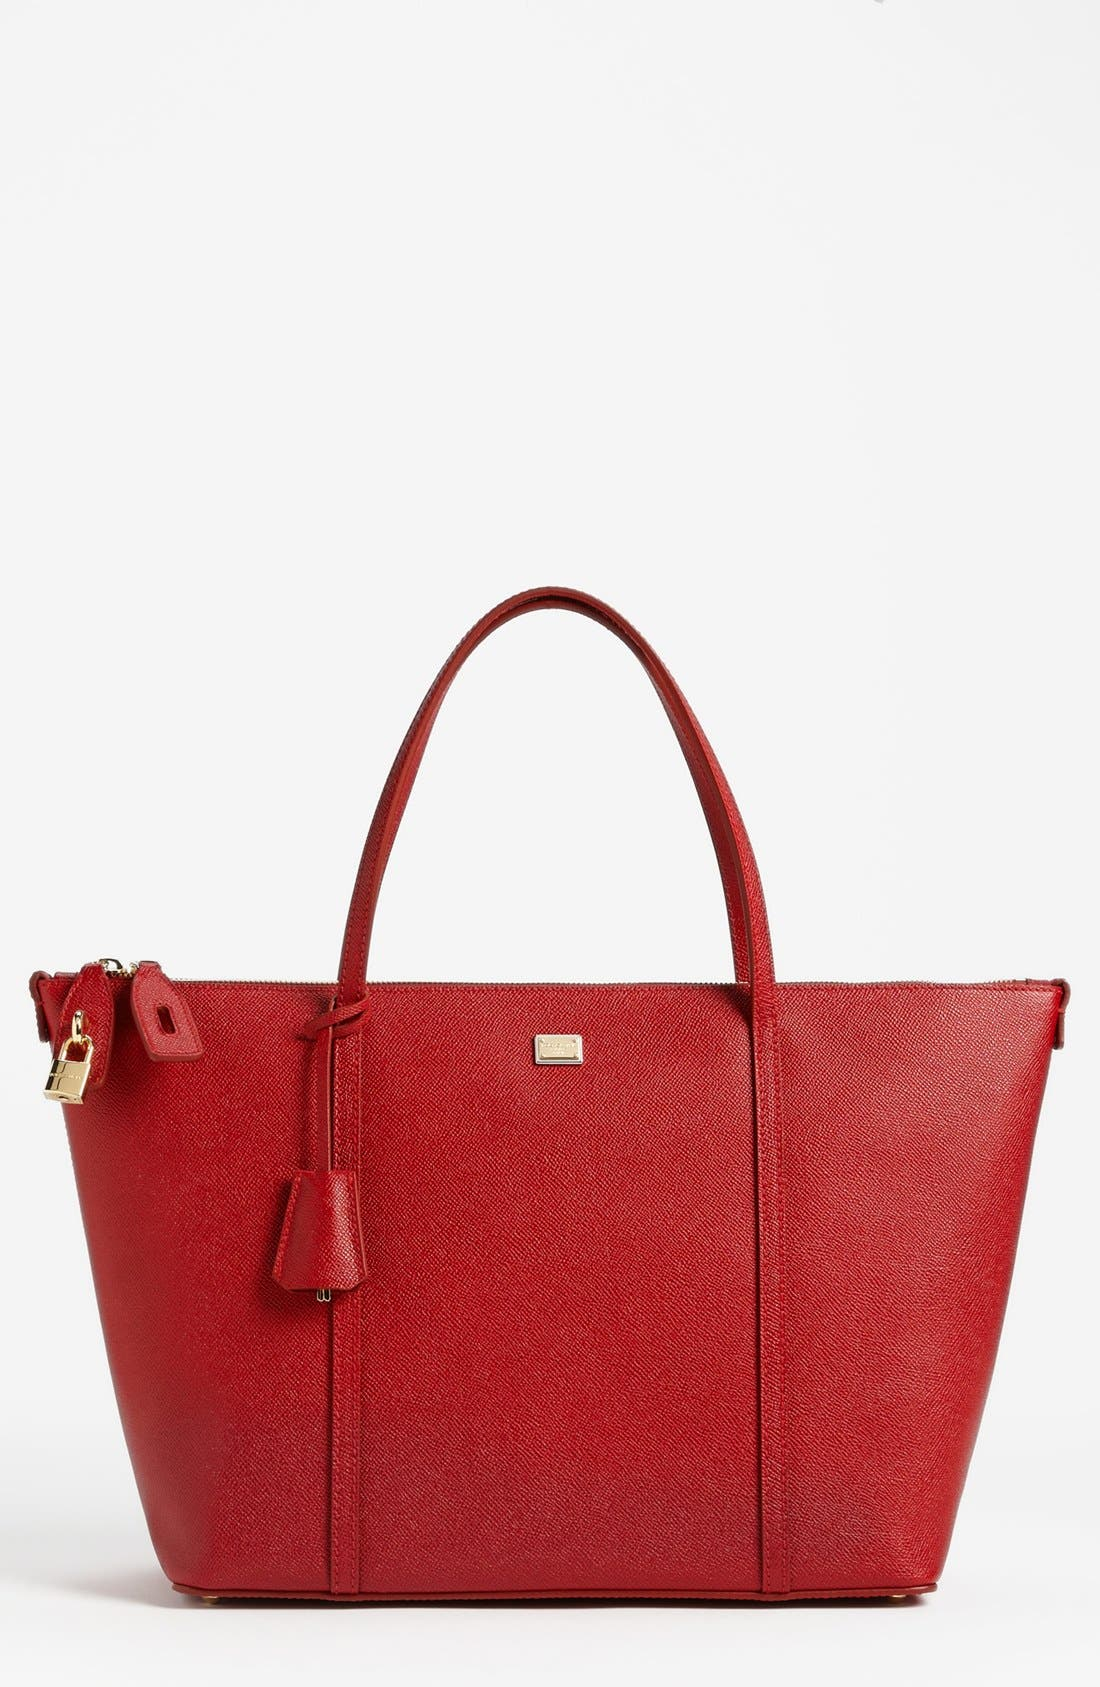 Alternate Image 1 Selected - Dolce&Gabbana 'Miss Escape - Classic' Leather Tote